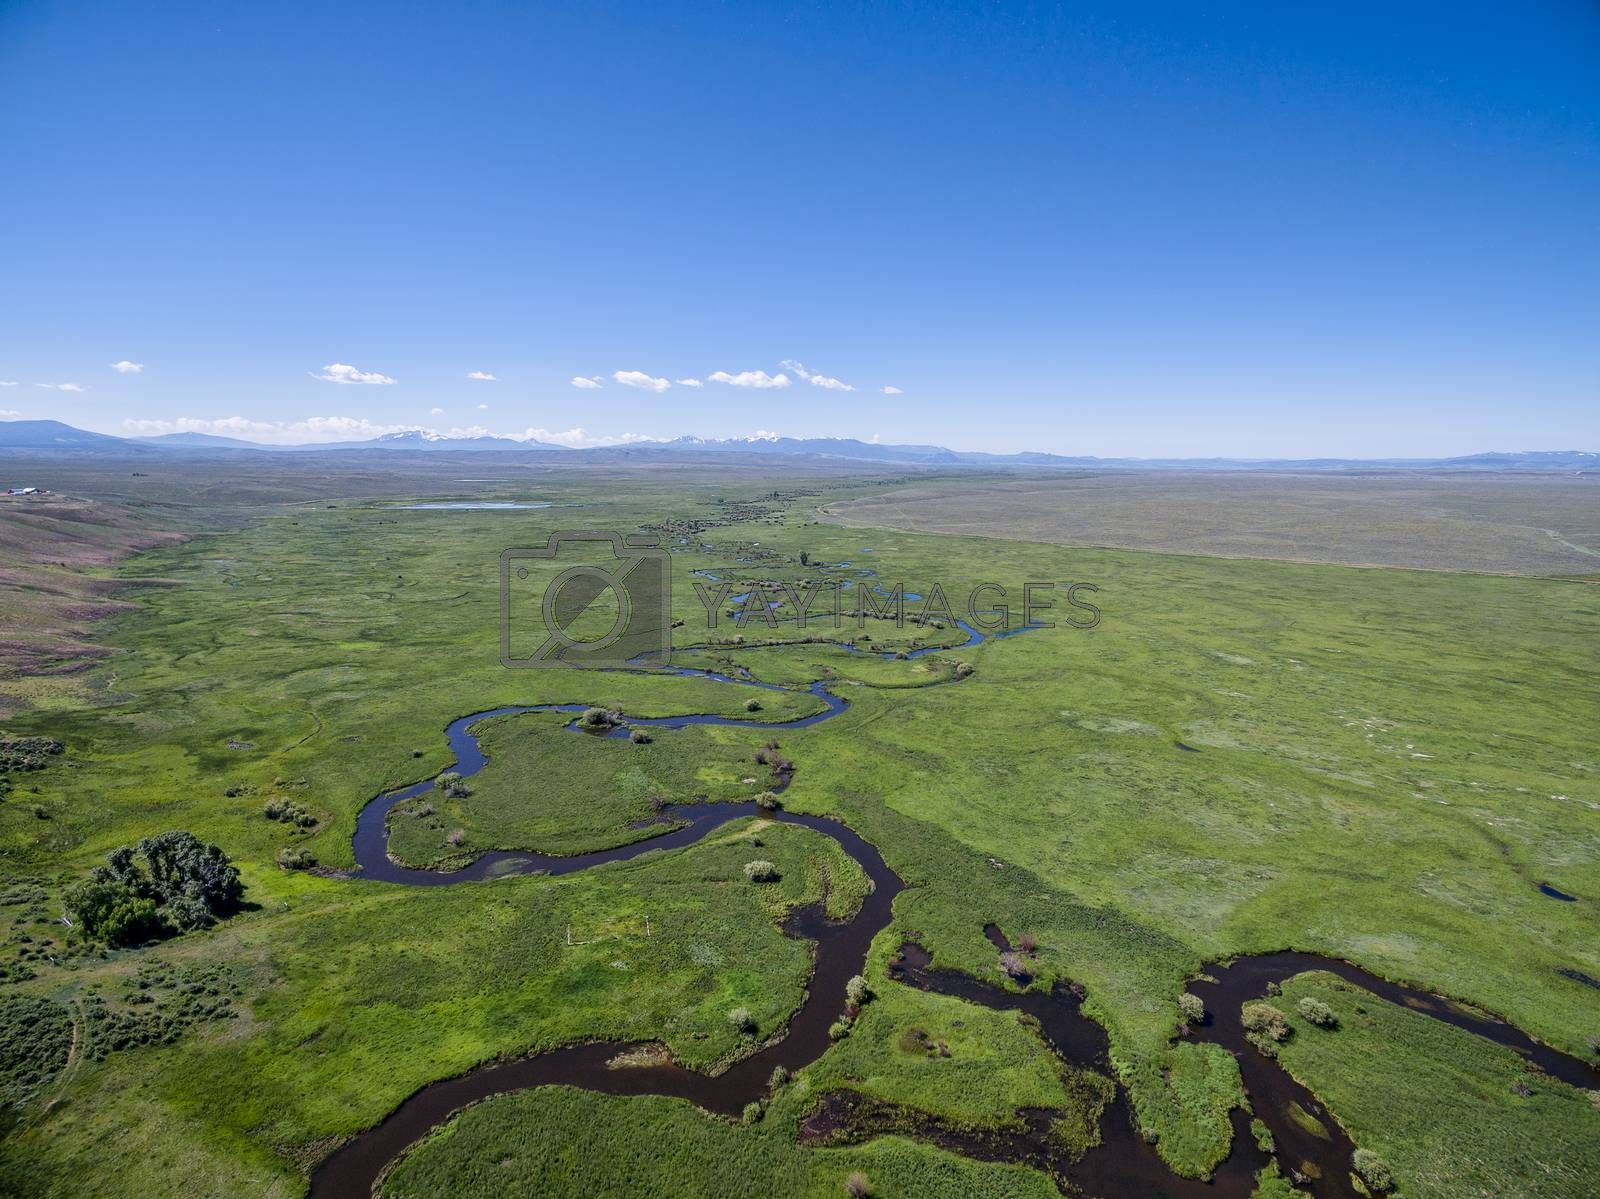 Illinois River meanders through Arapaho National Wildlife Refuge, North Park near Walden, Colorado, early summer aerial view